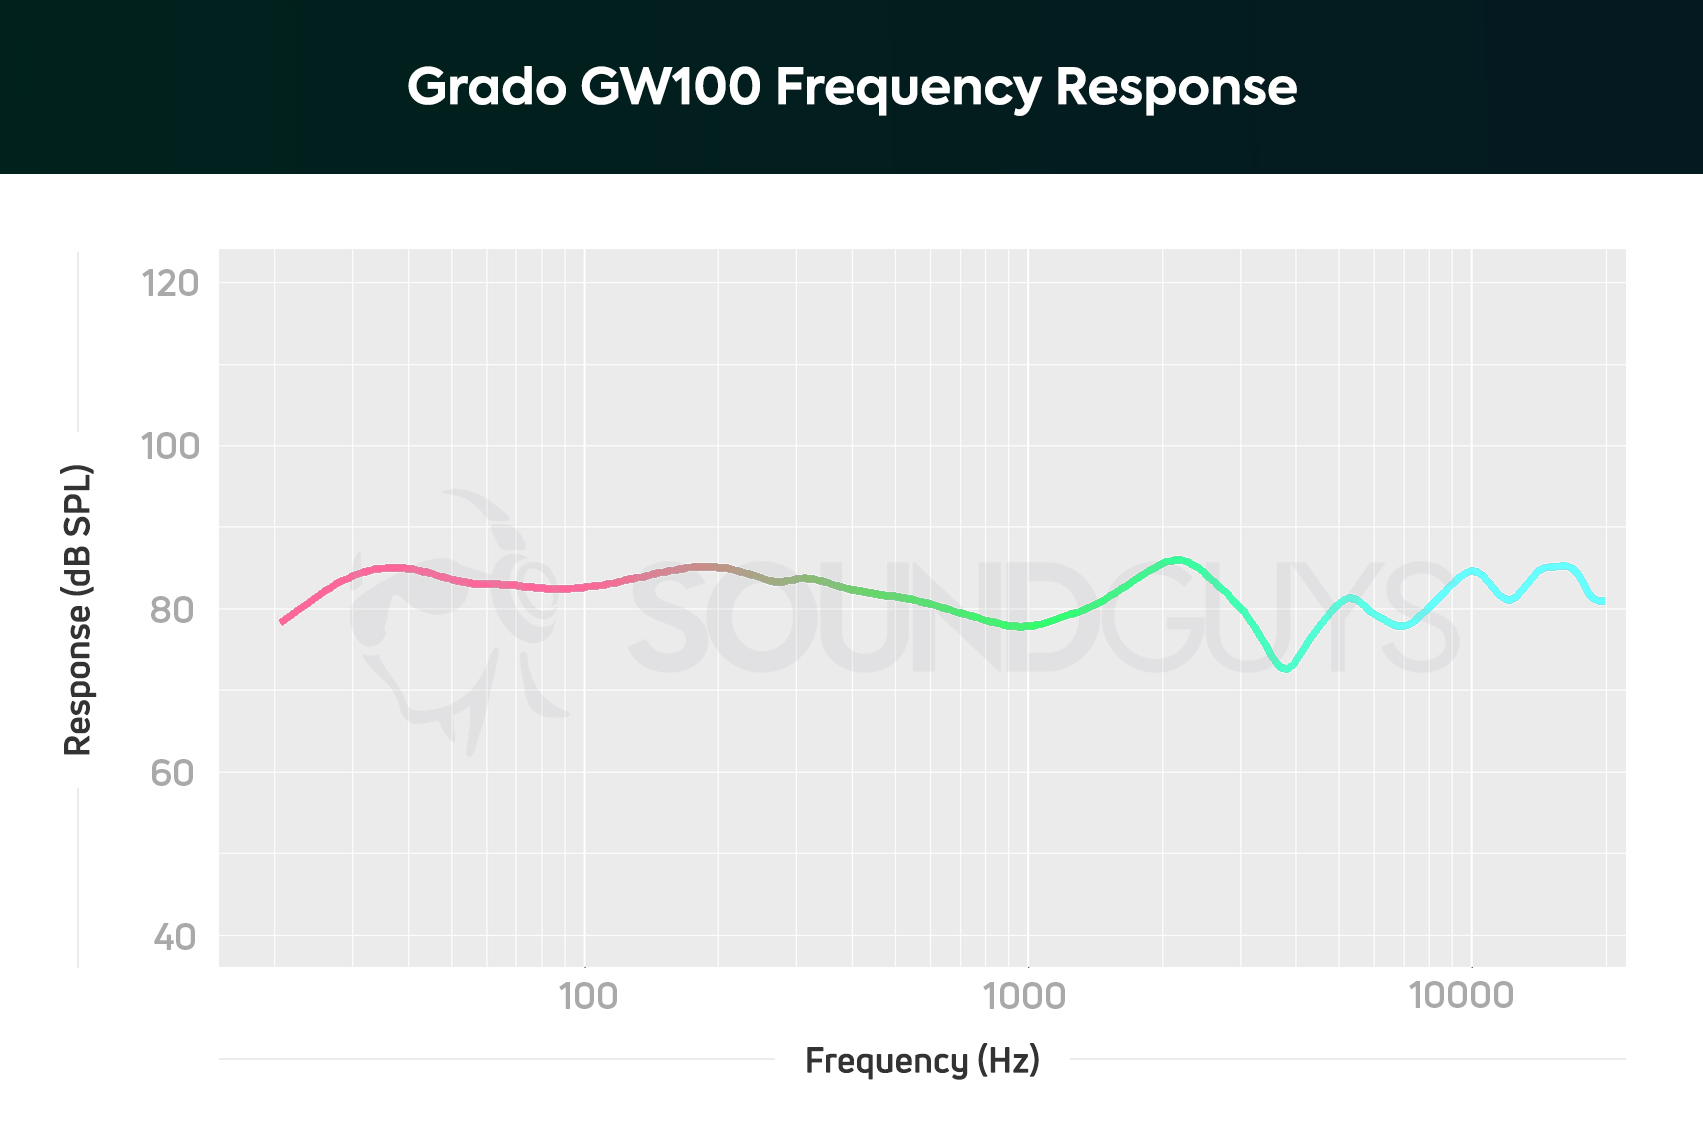 hight resolution of a chart showing the note emphasis and frequency response of the grado gw100 open back